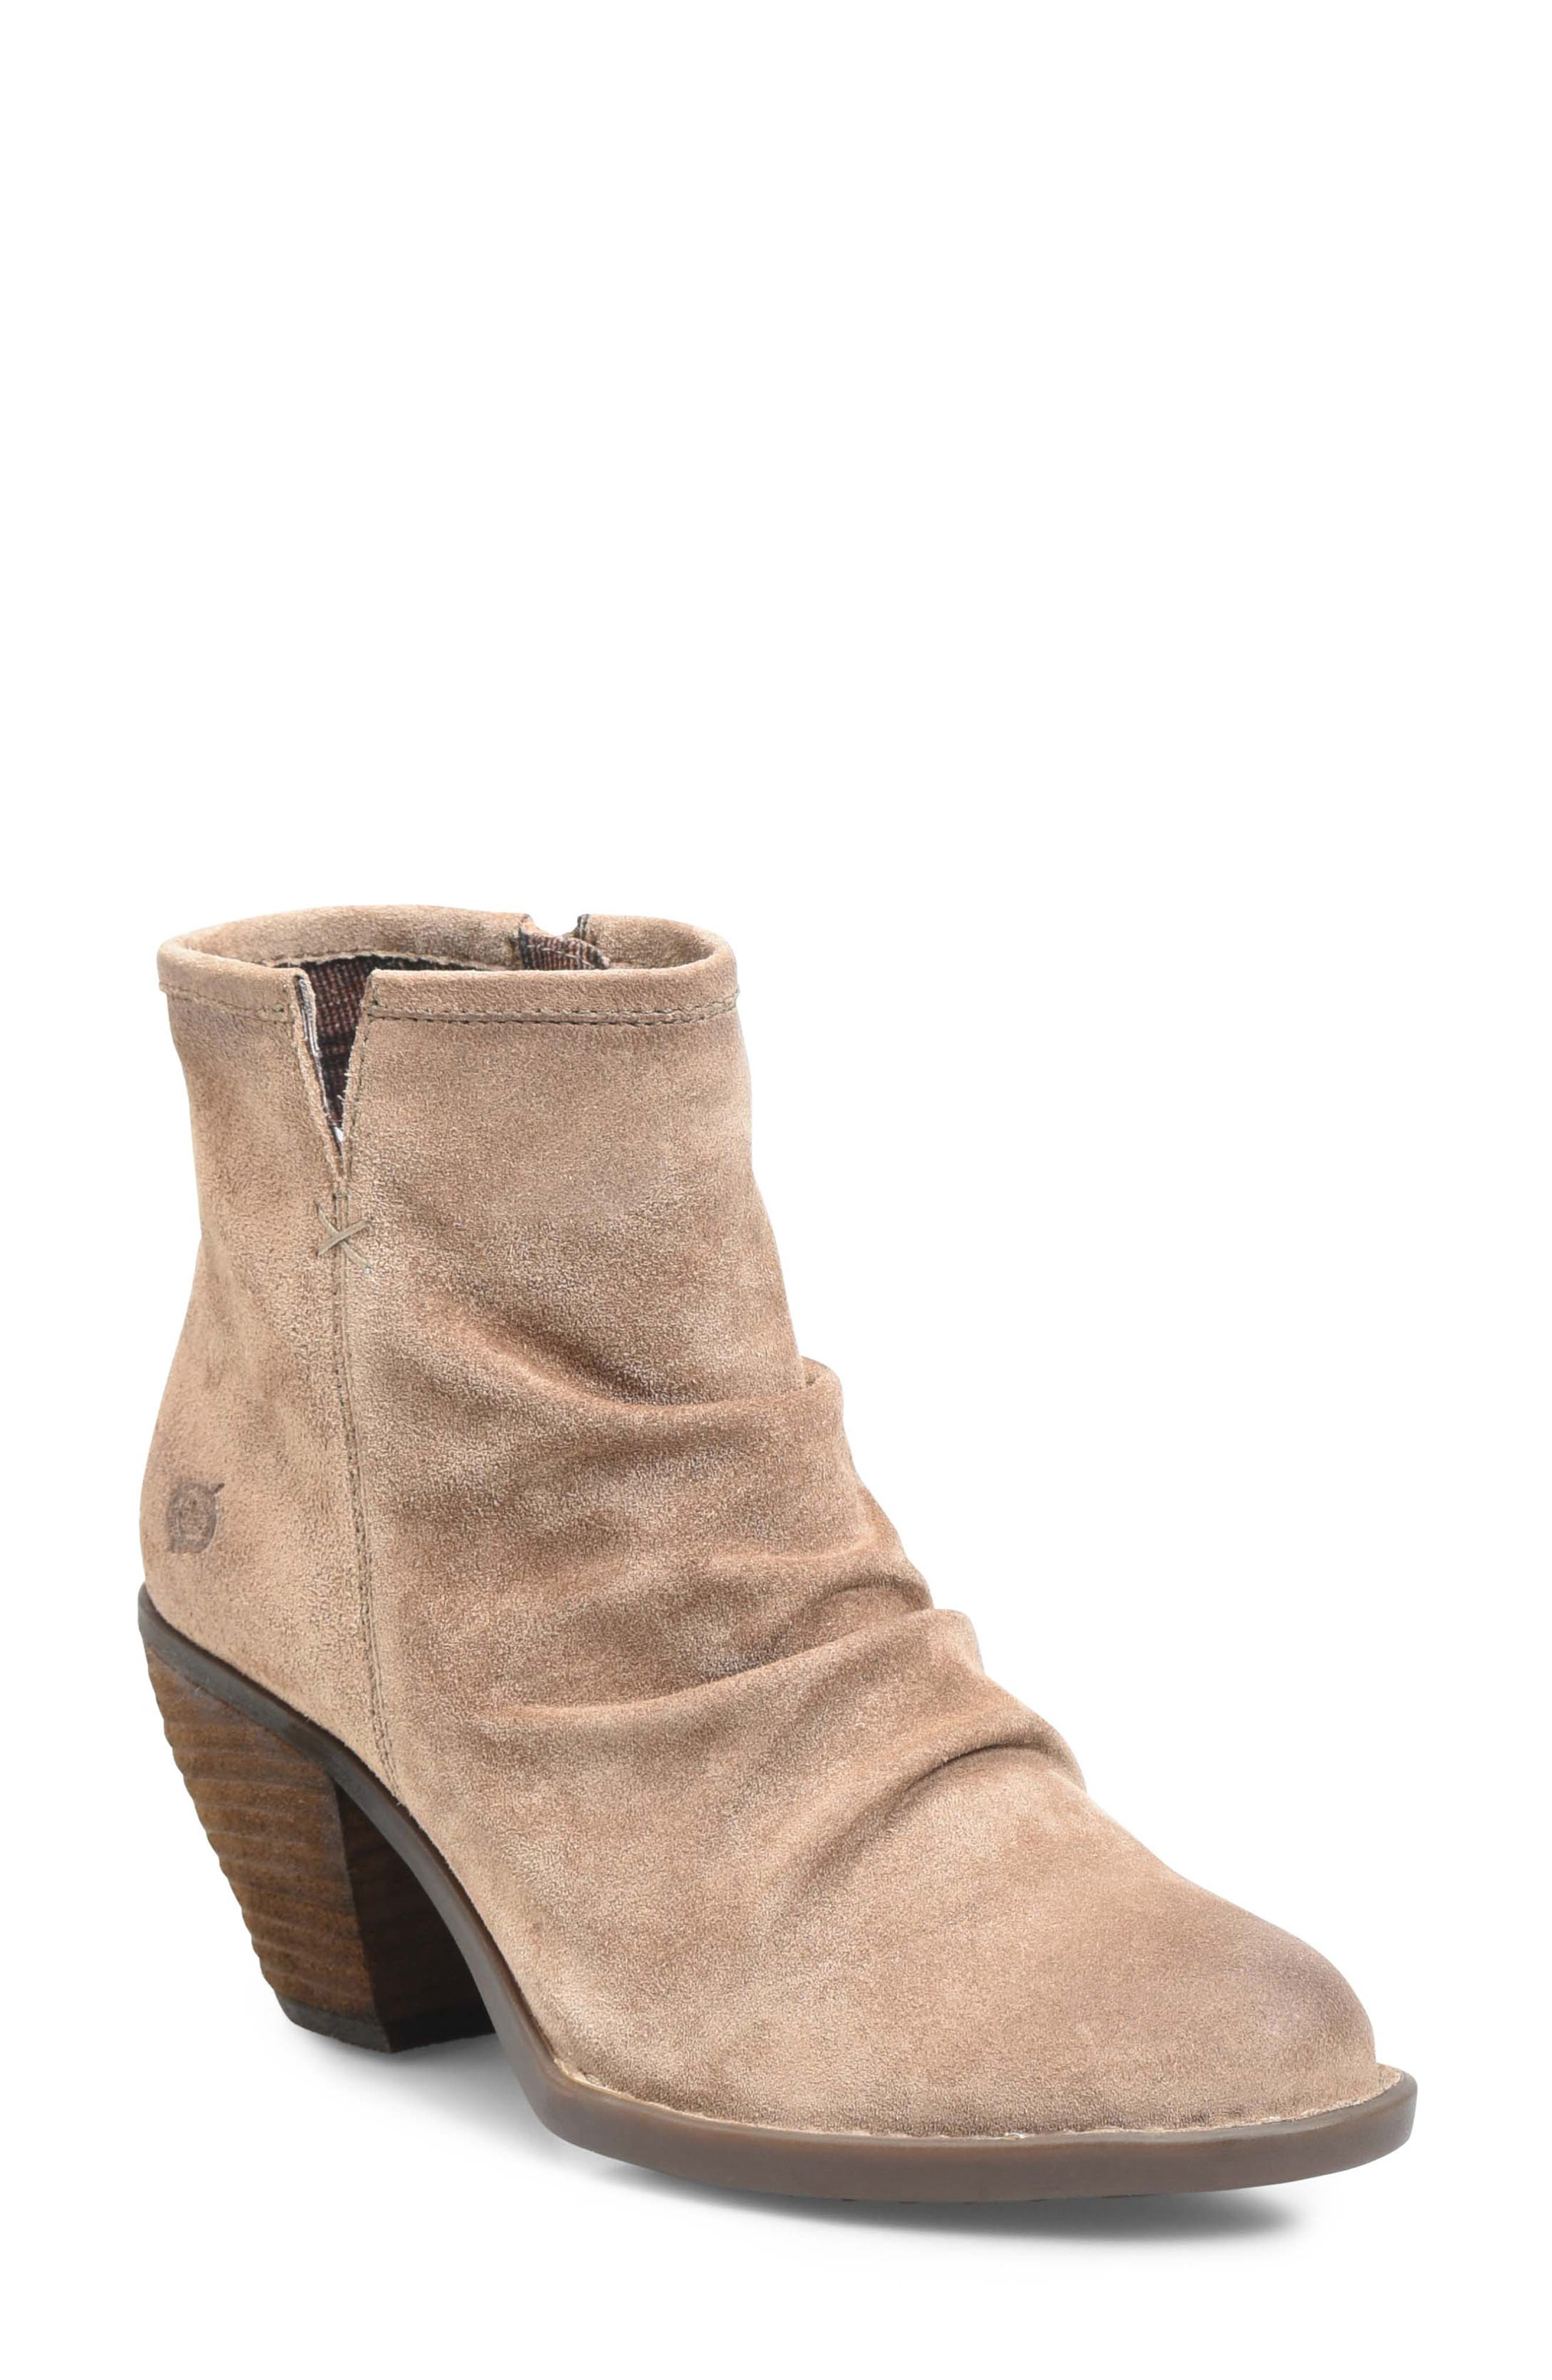 B rn Aire Bootie 8ed24496c